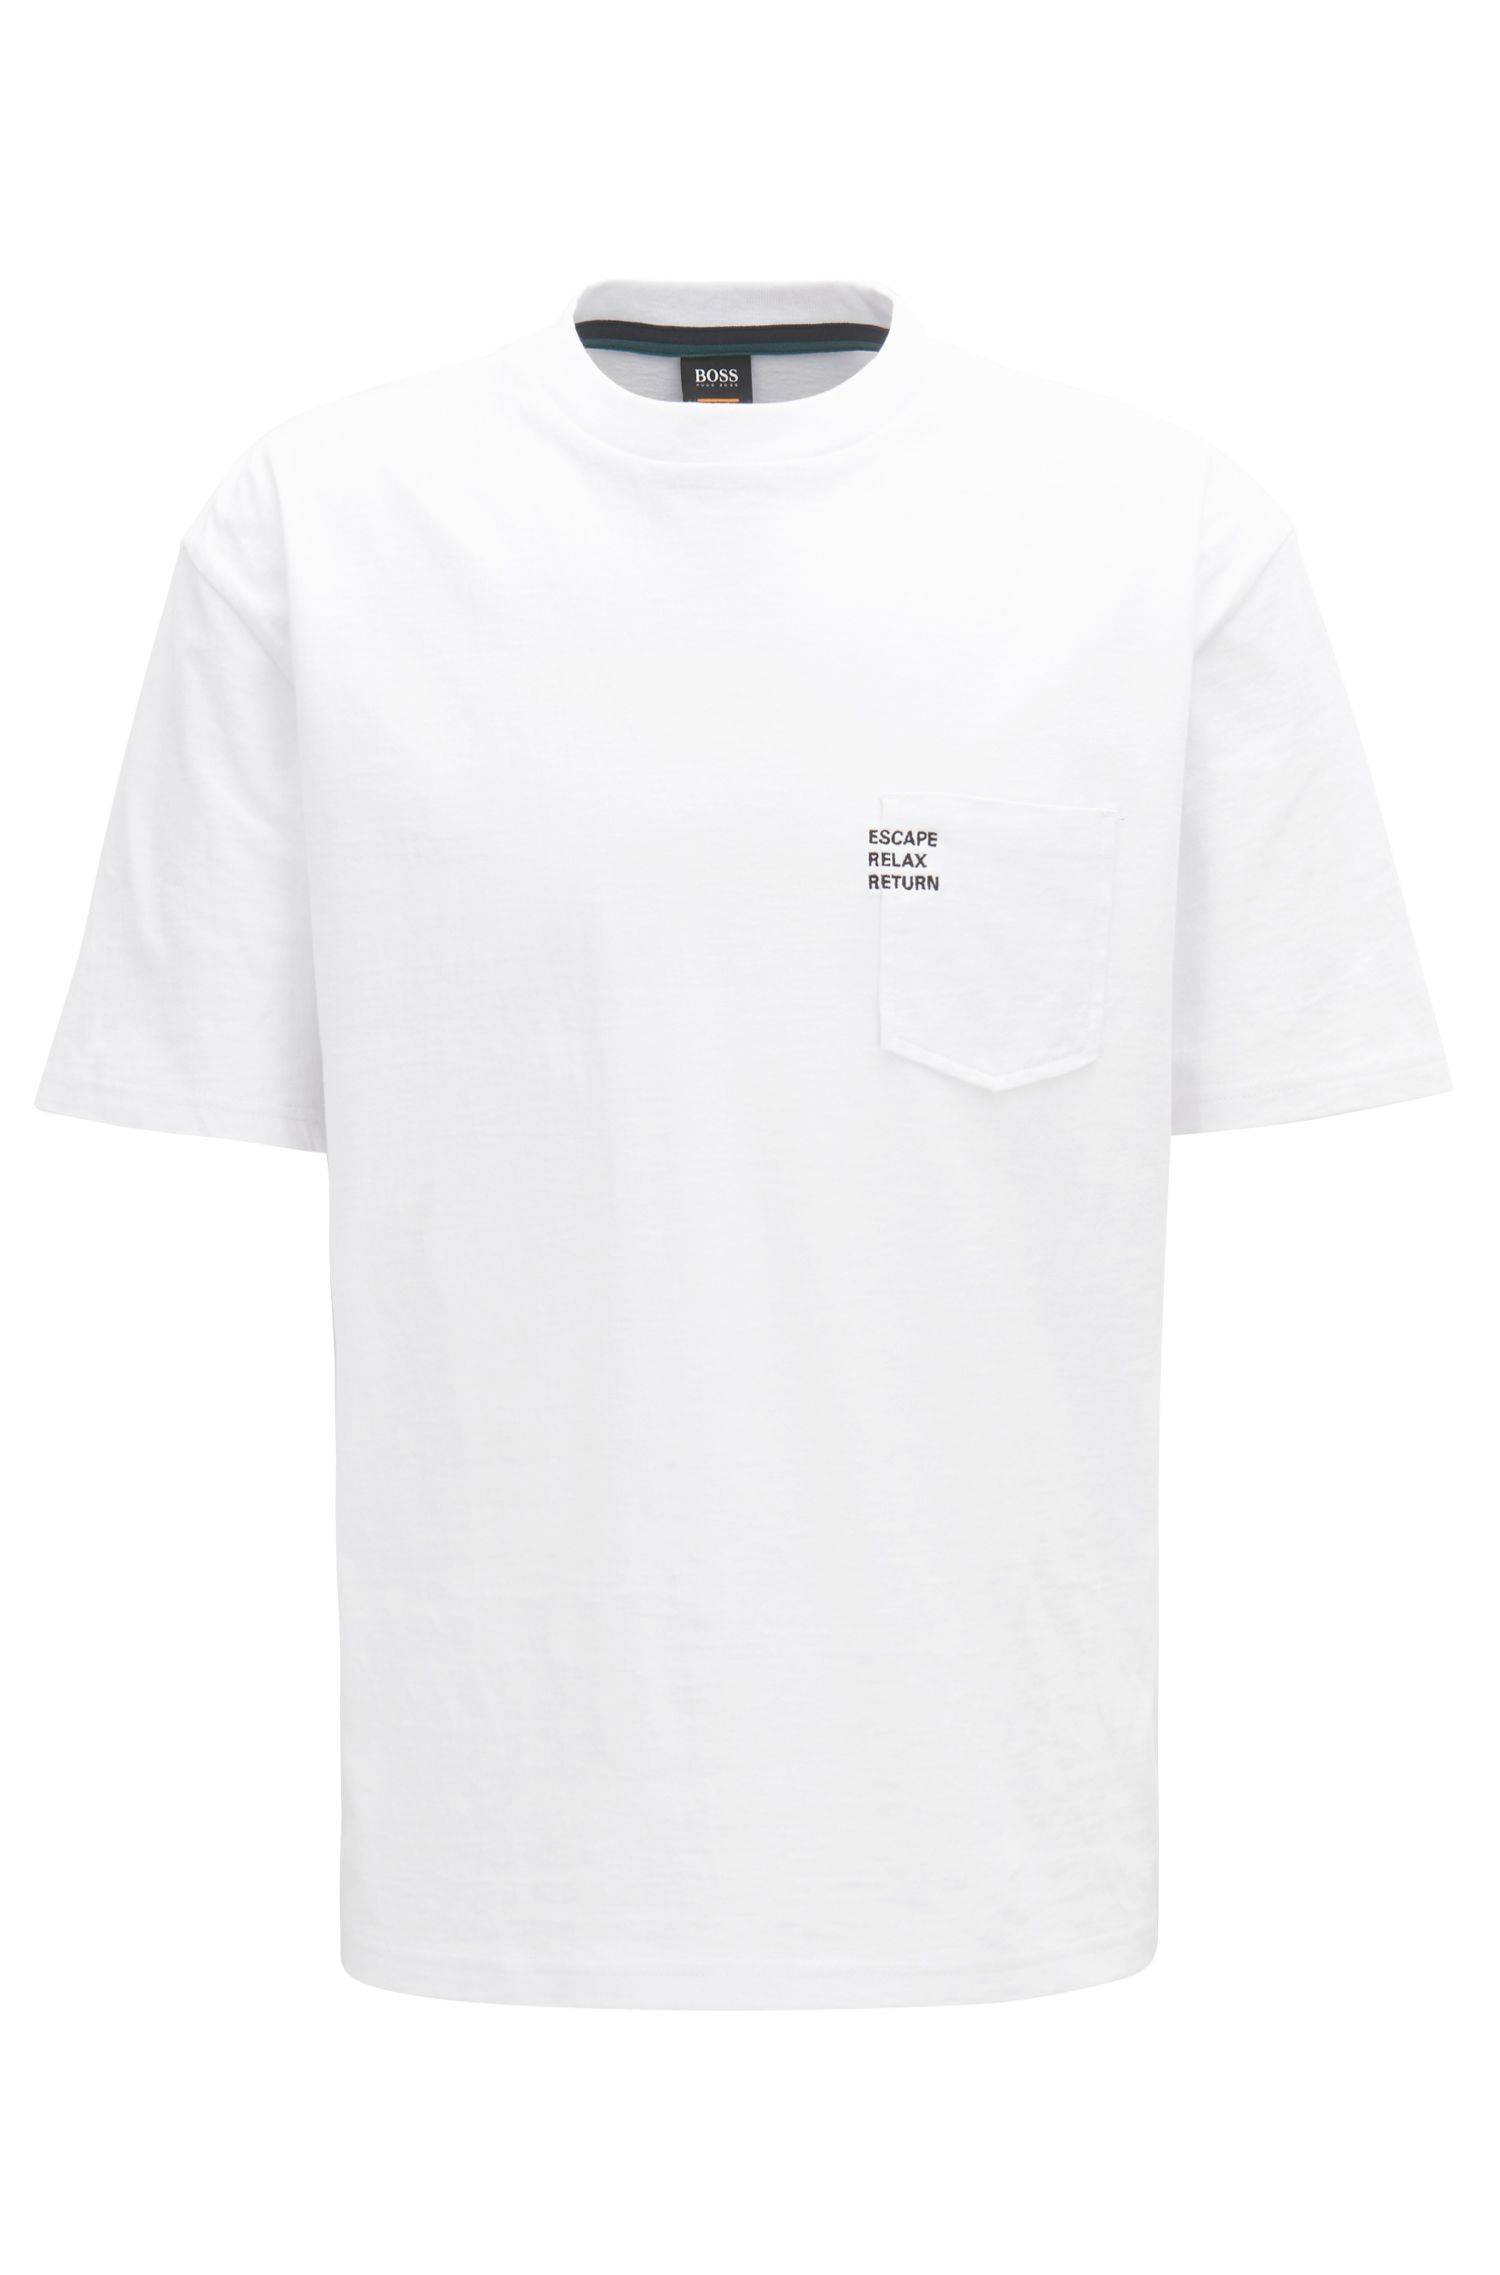 Boxy-fit slogan T-shirt in heavy cotton jersey